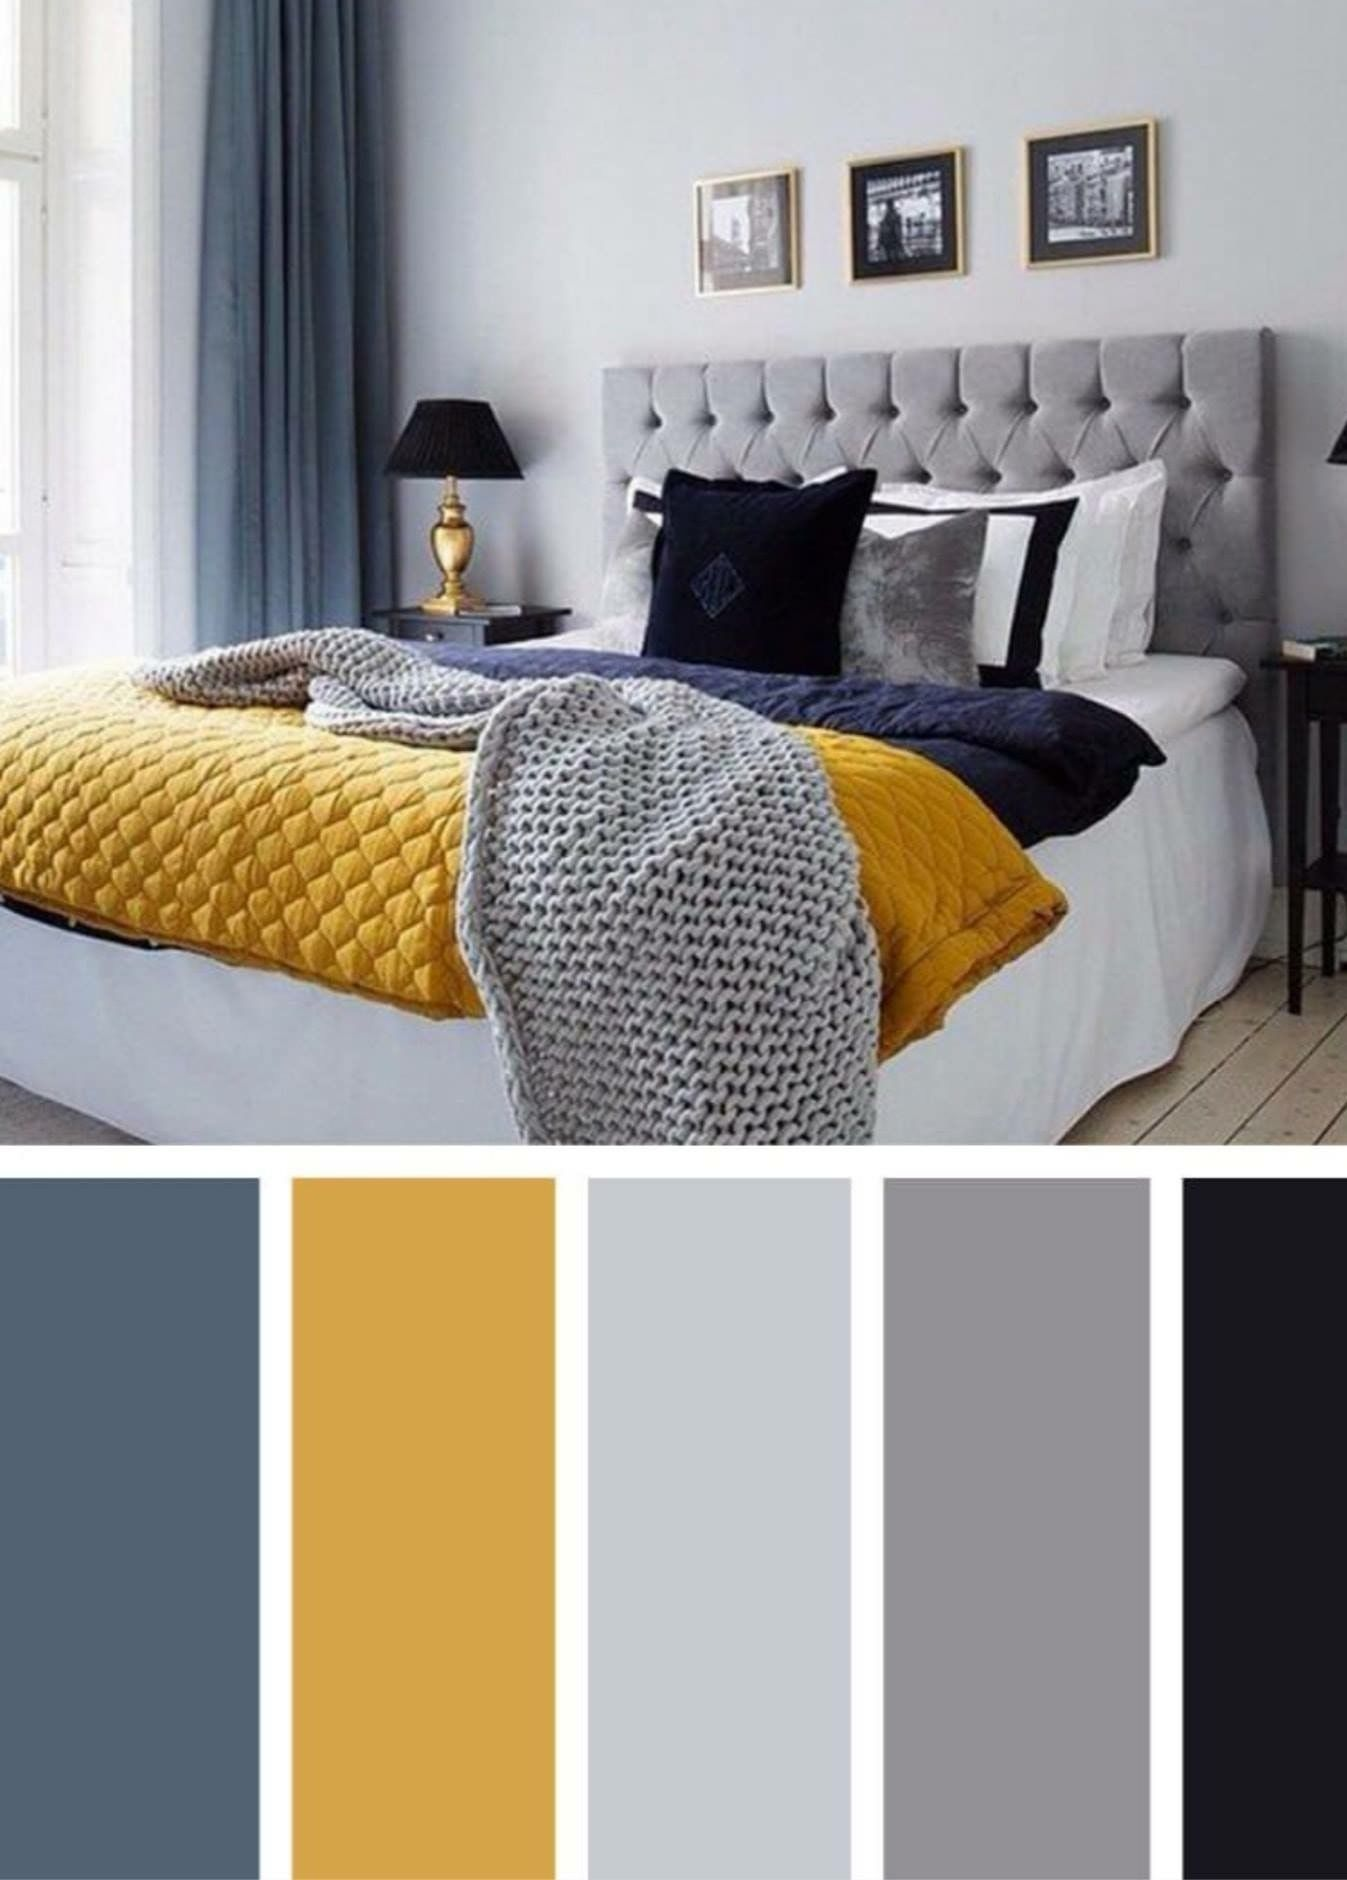 5 Amazing Ideas For Narrow Bedroom Designs That Can Make Your